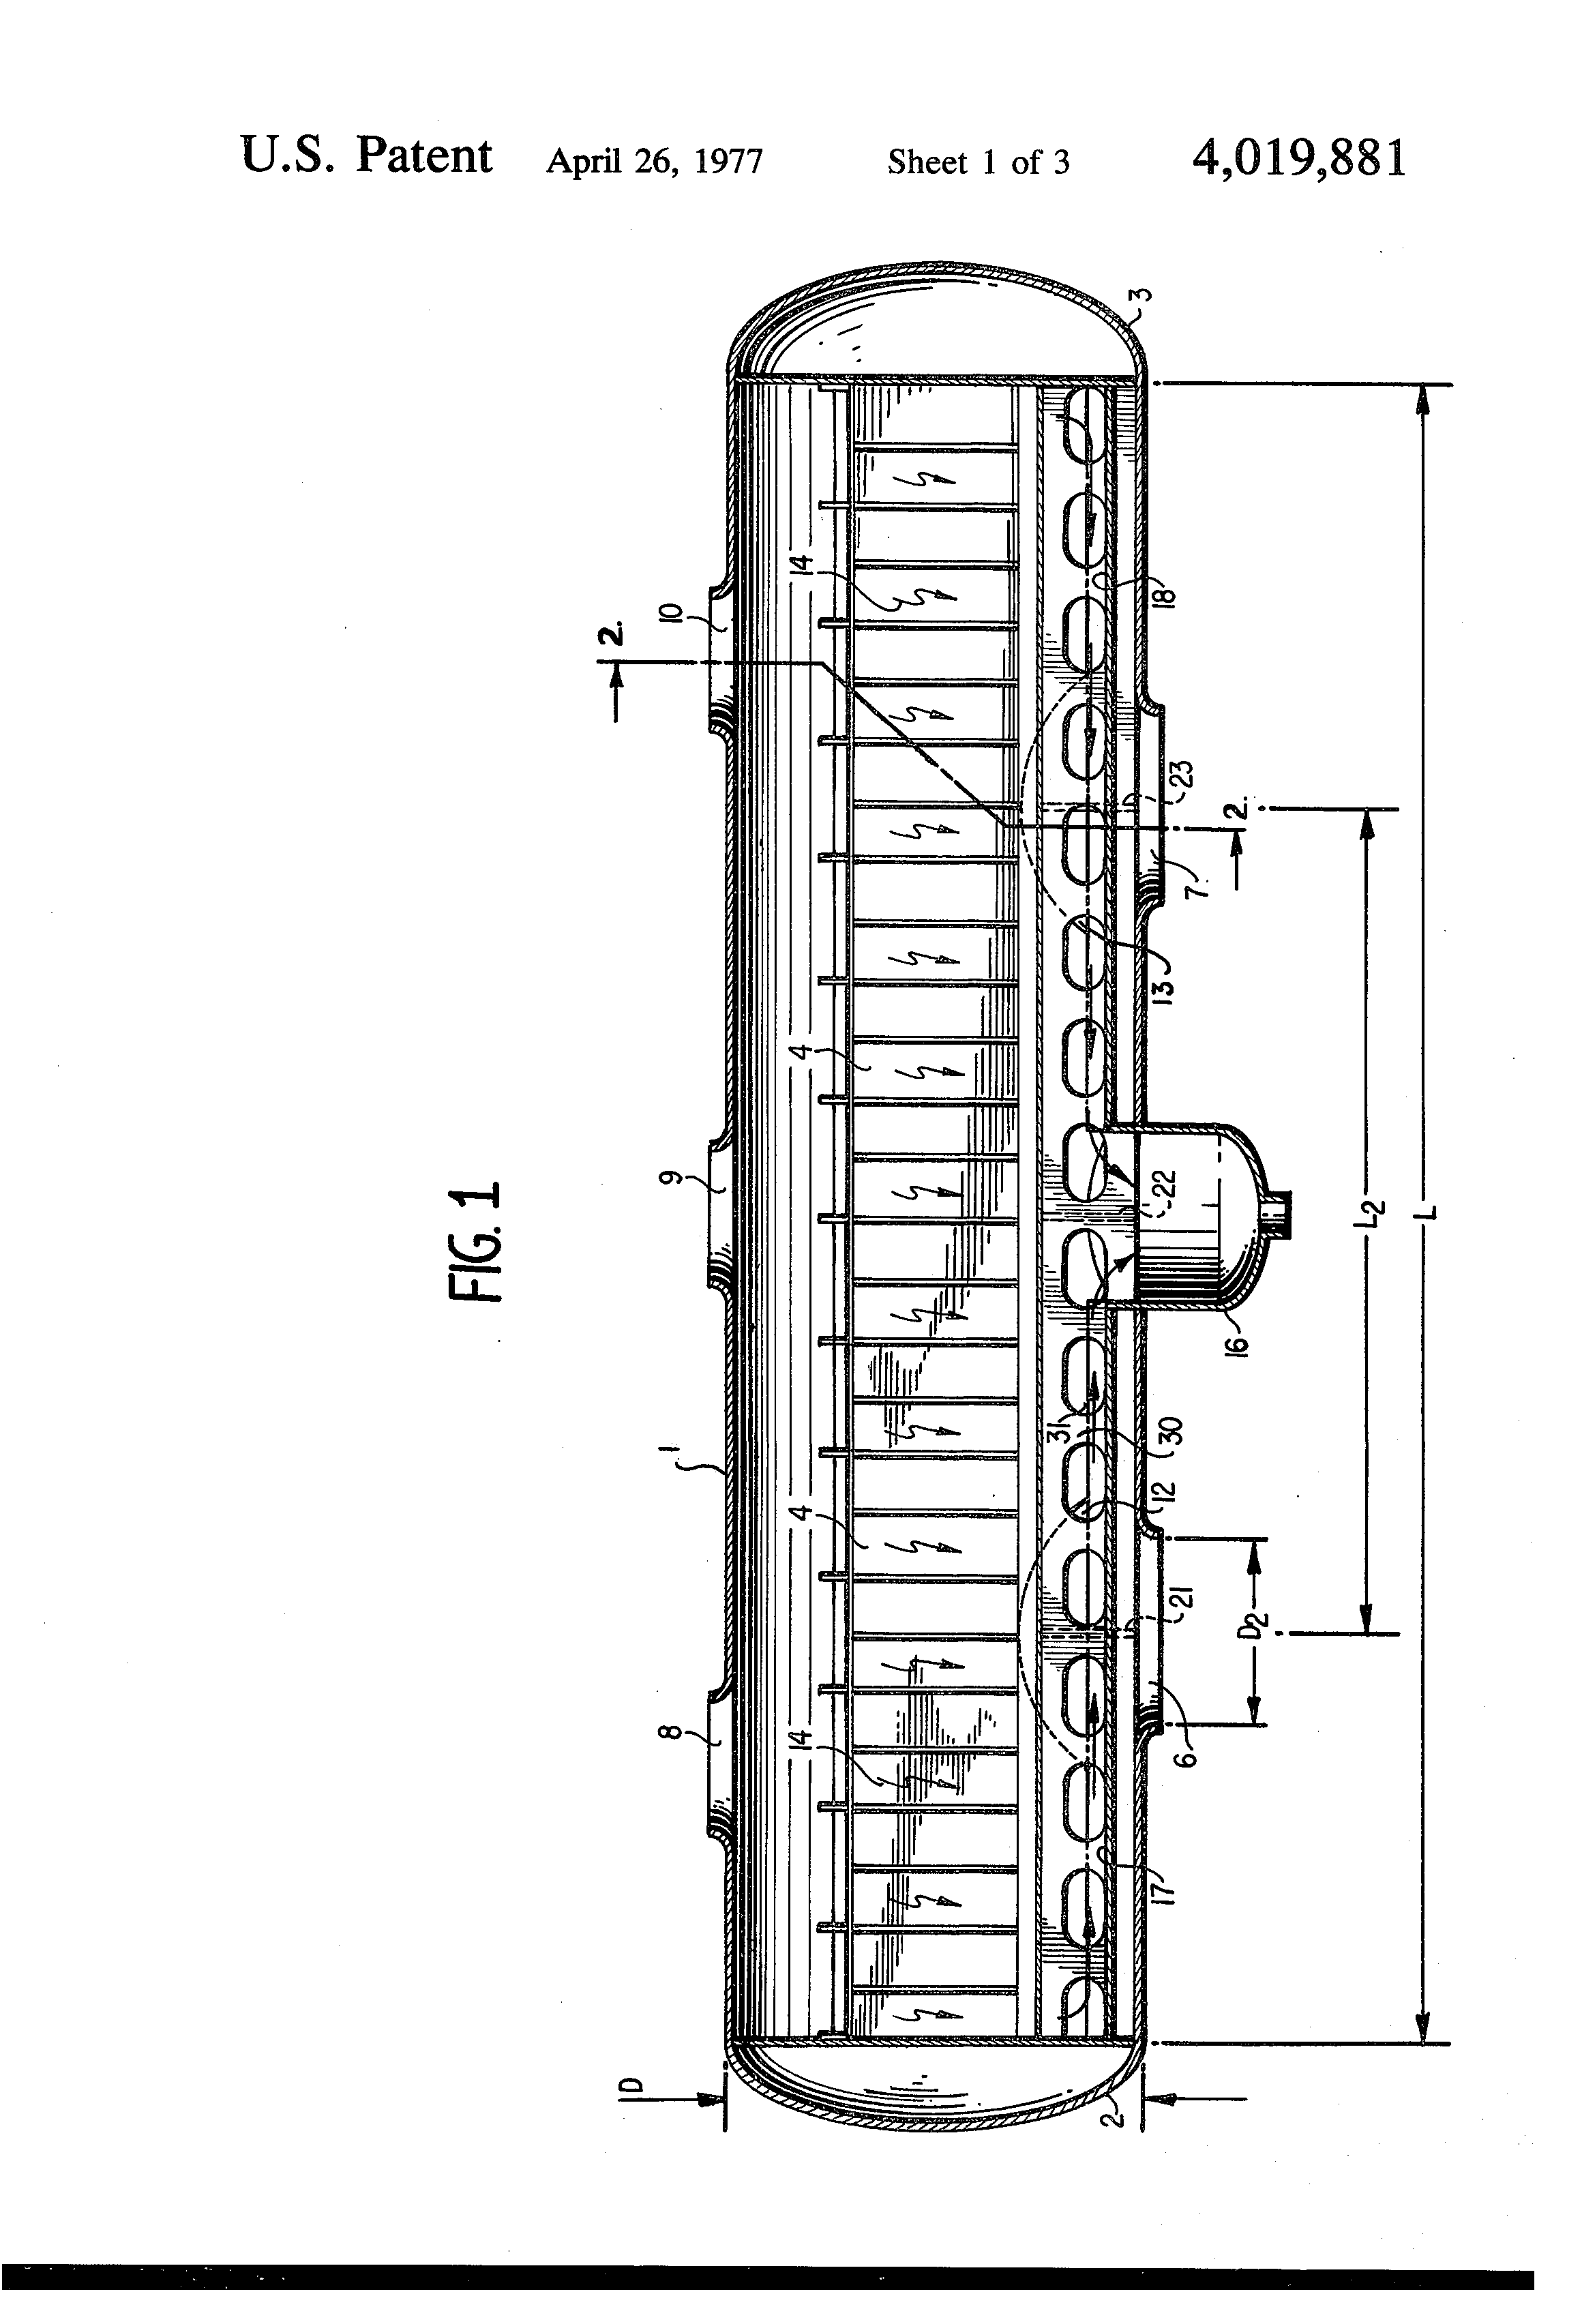 Patent US Moisture separator for a nuclear steam turbine